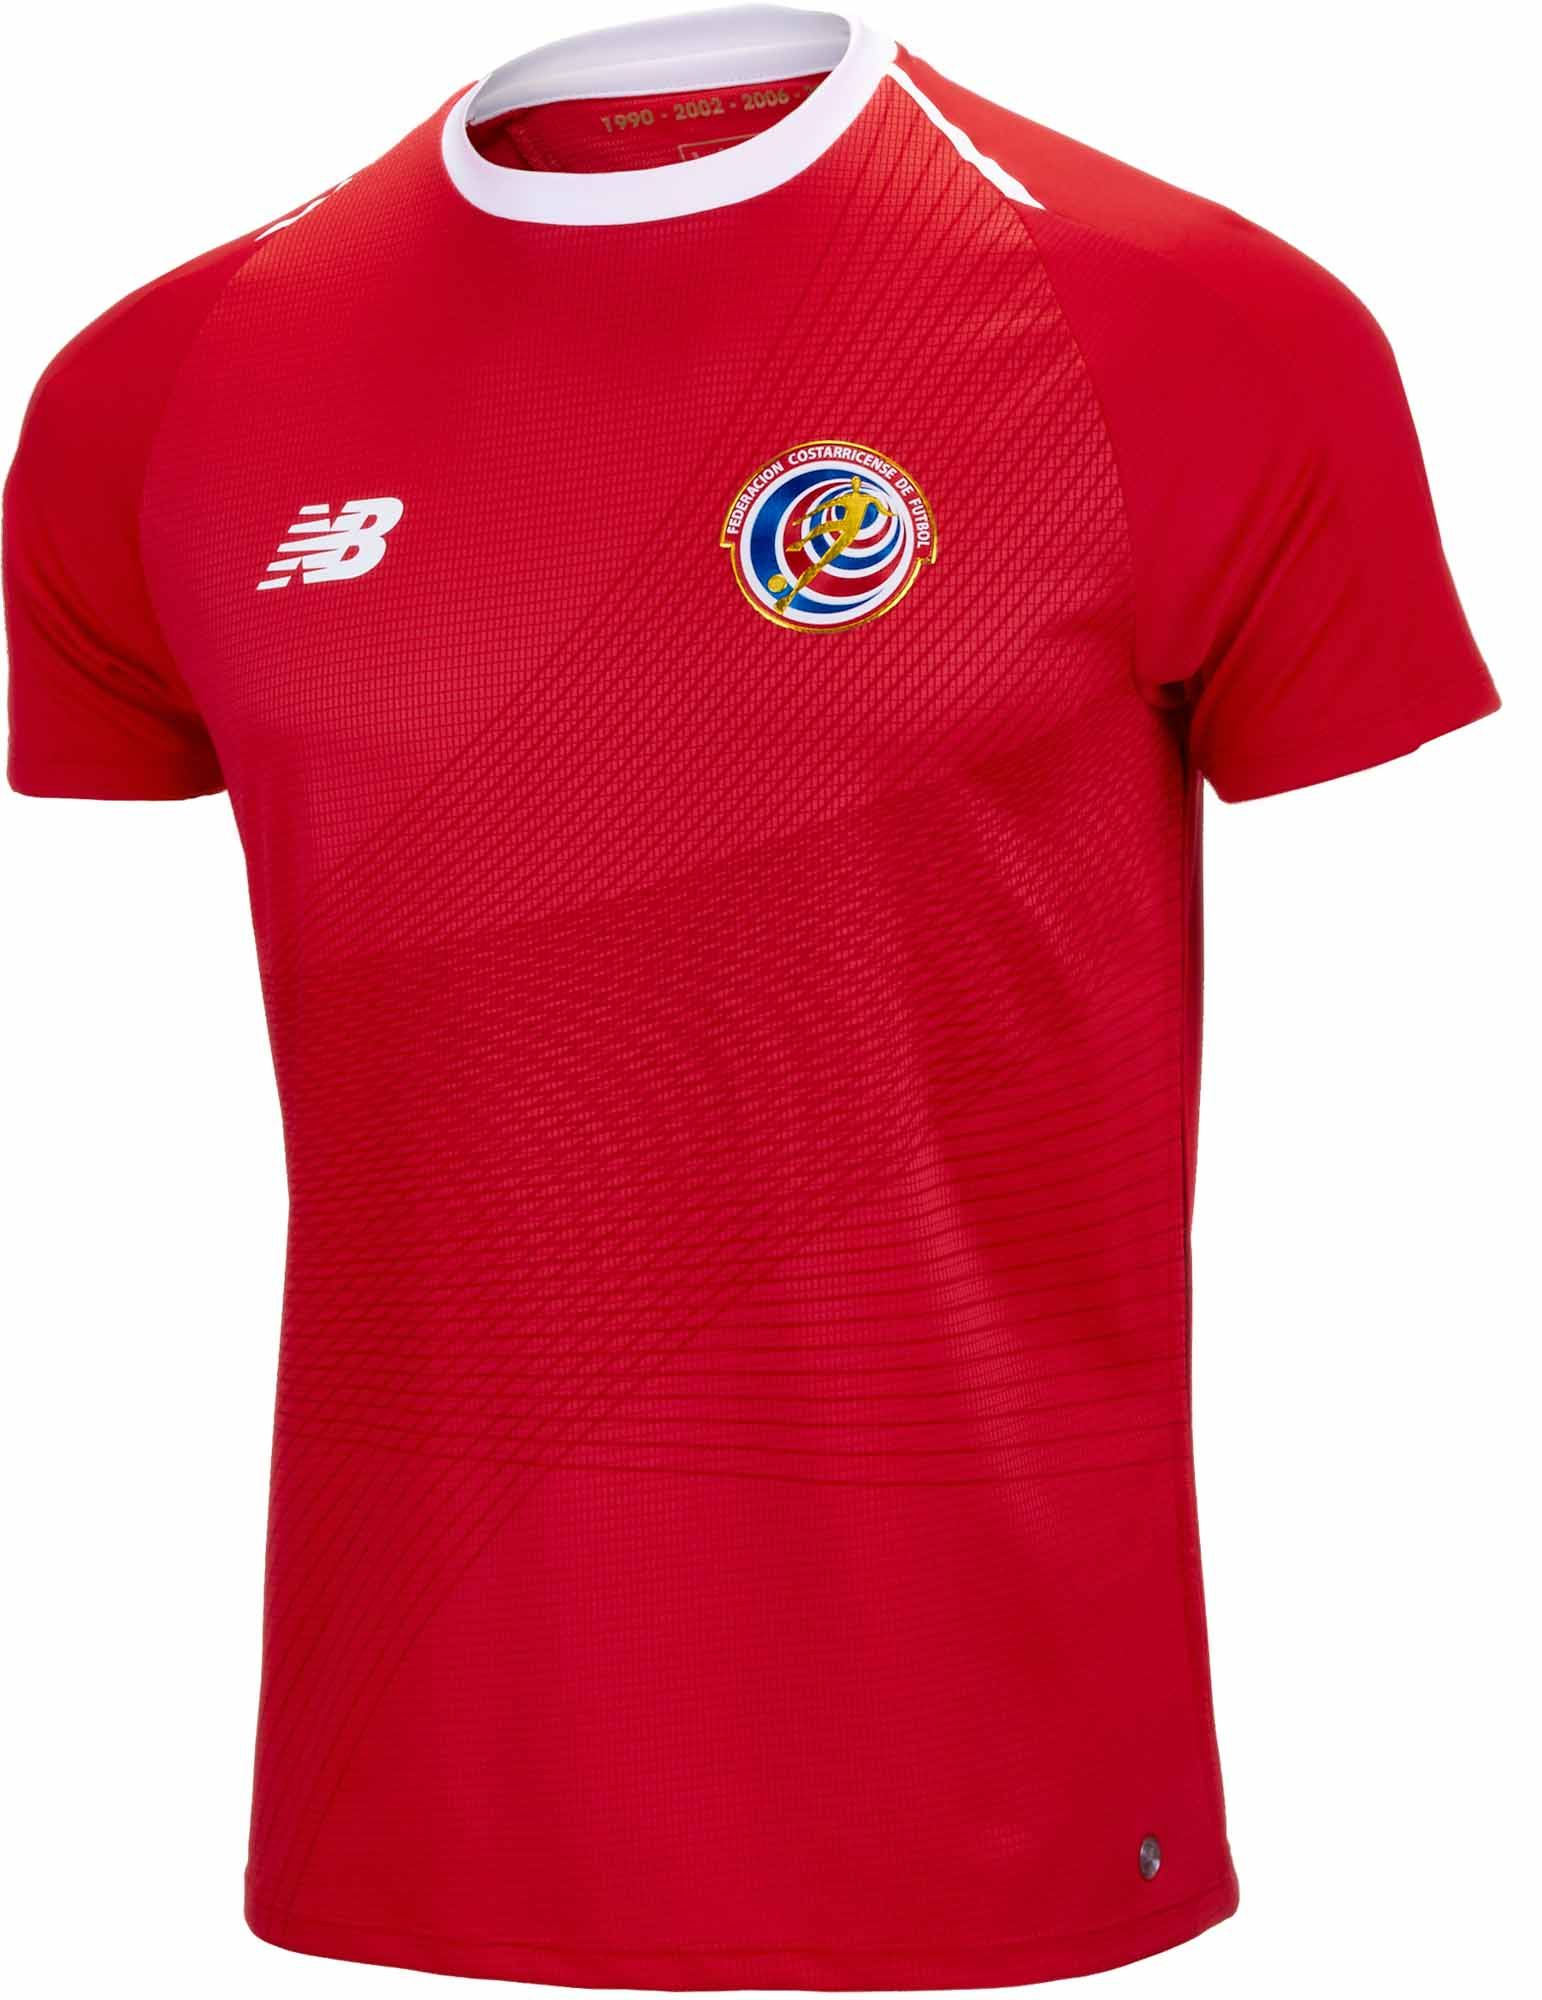 088198403df Buy the 2018 19 NB Costa Rica Home Jersey from SoccerPro.